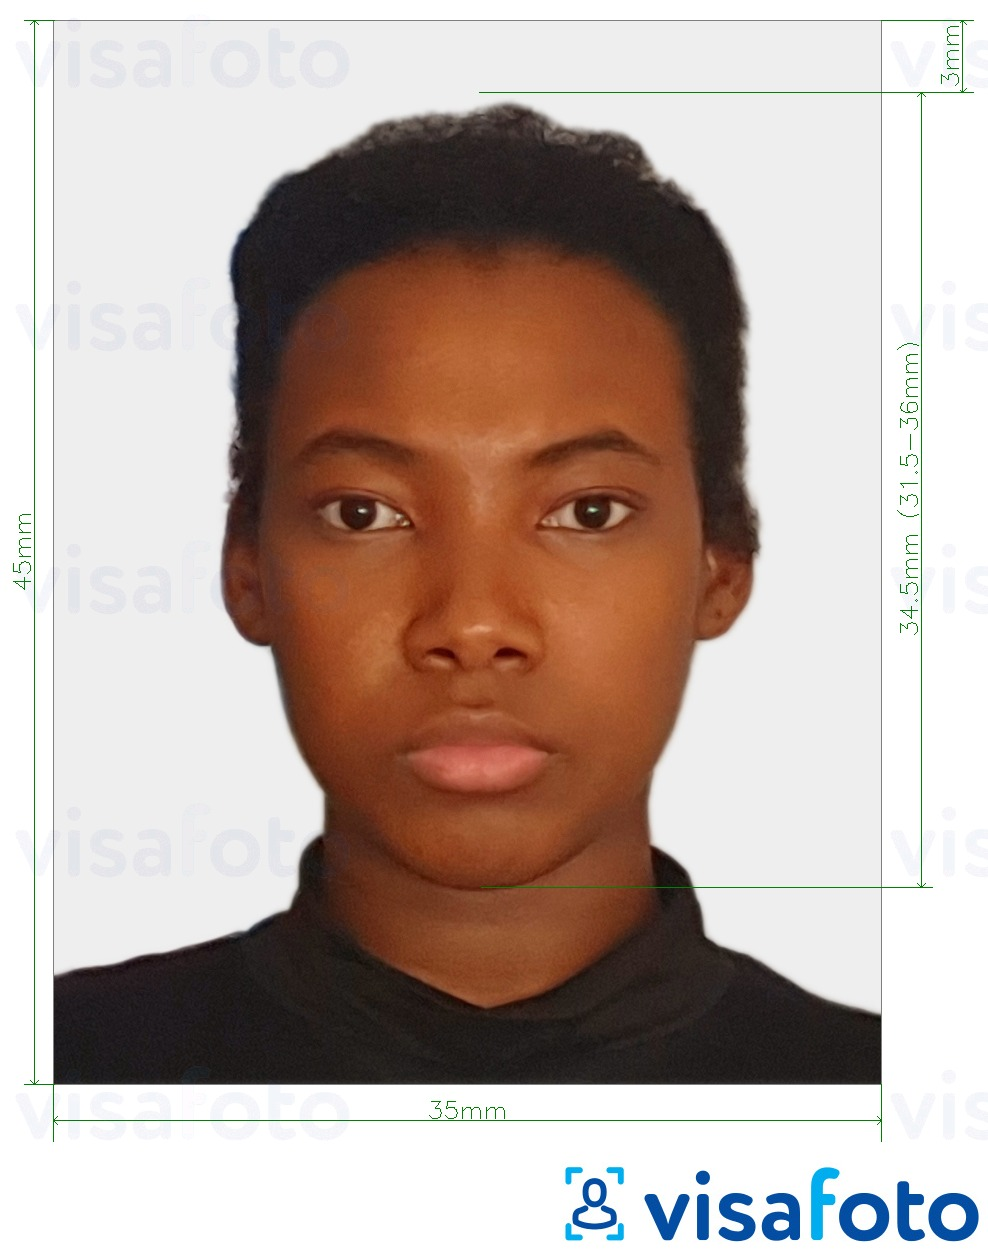 Example of photo for South Africa Visa 35x45 mm (3.5x4.5 cm) with exact size specification